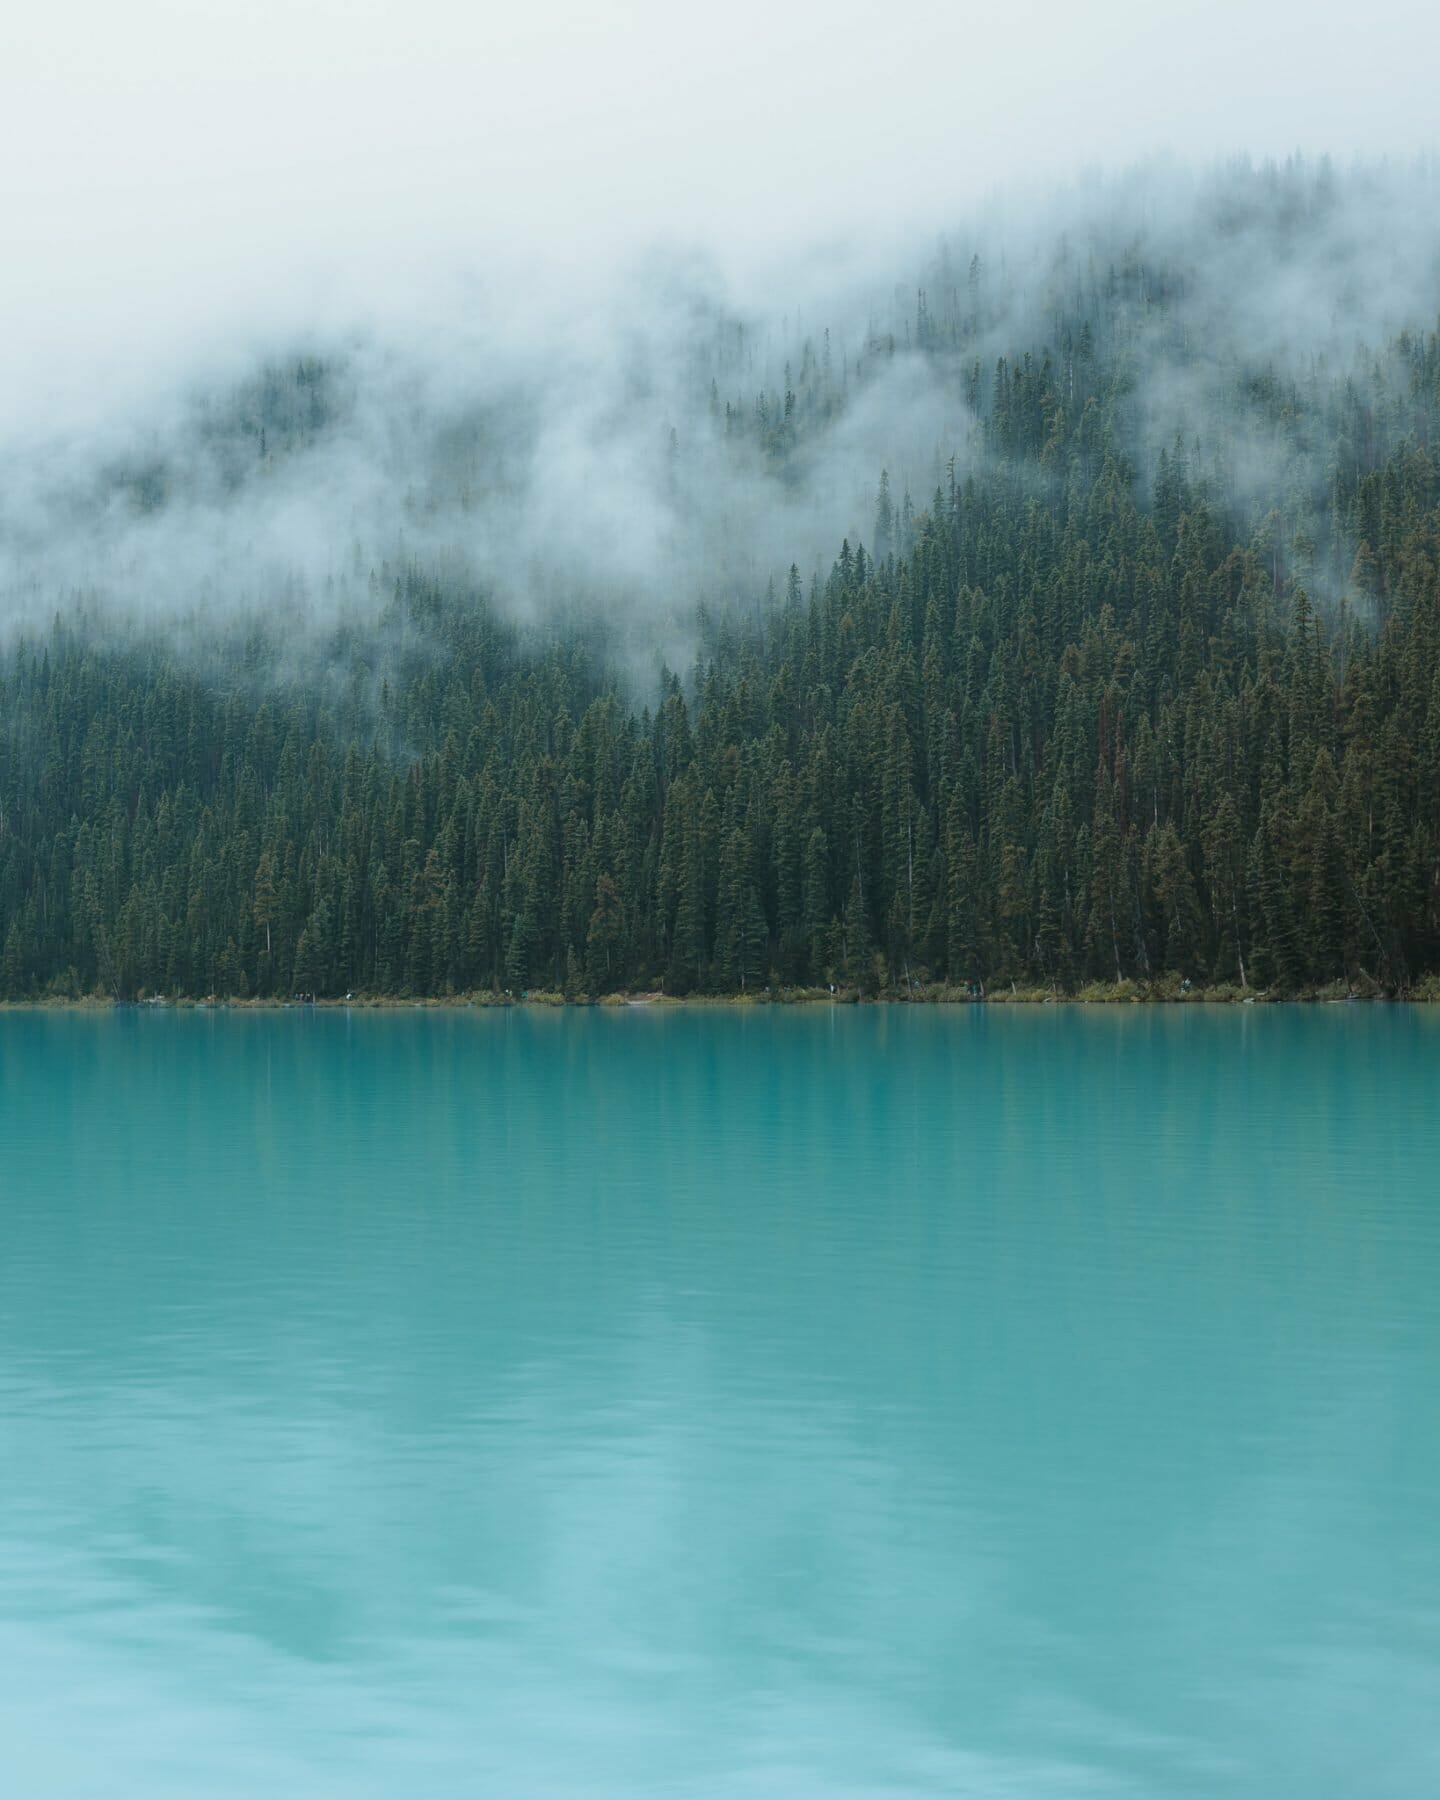 Lake Louise misty forests